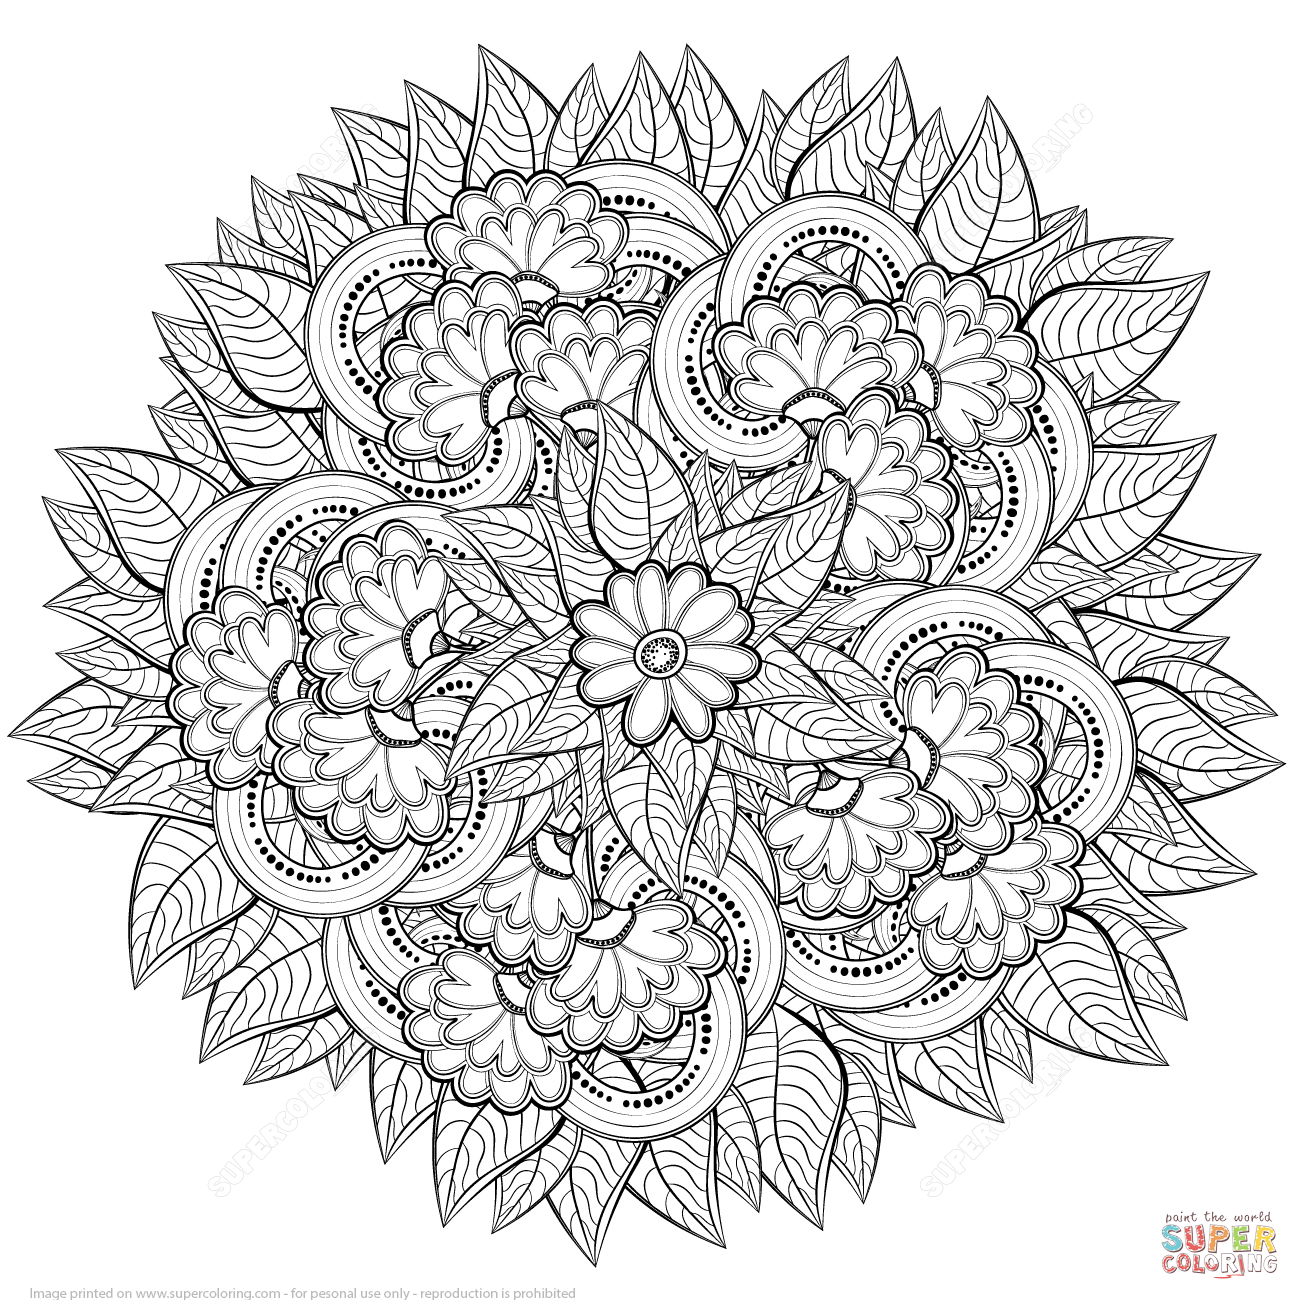 zentangle coloring pages free printable adult zentangle zen turtle coloring pages printable pages zentangle coloring printable free